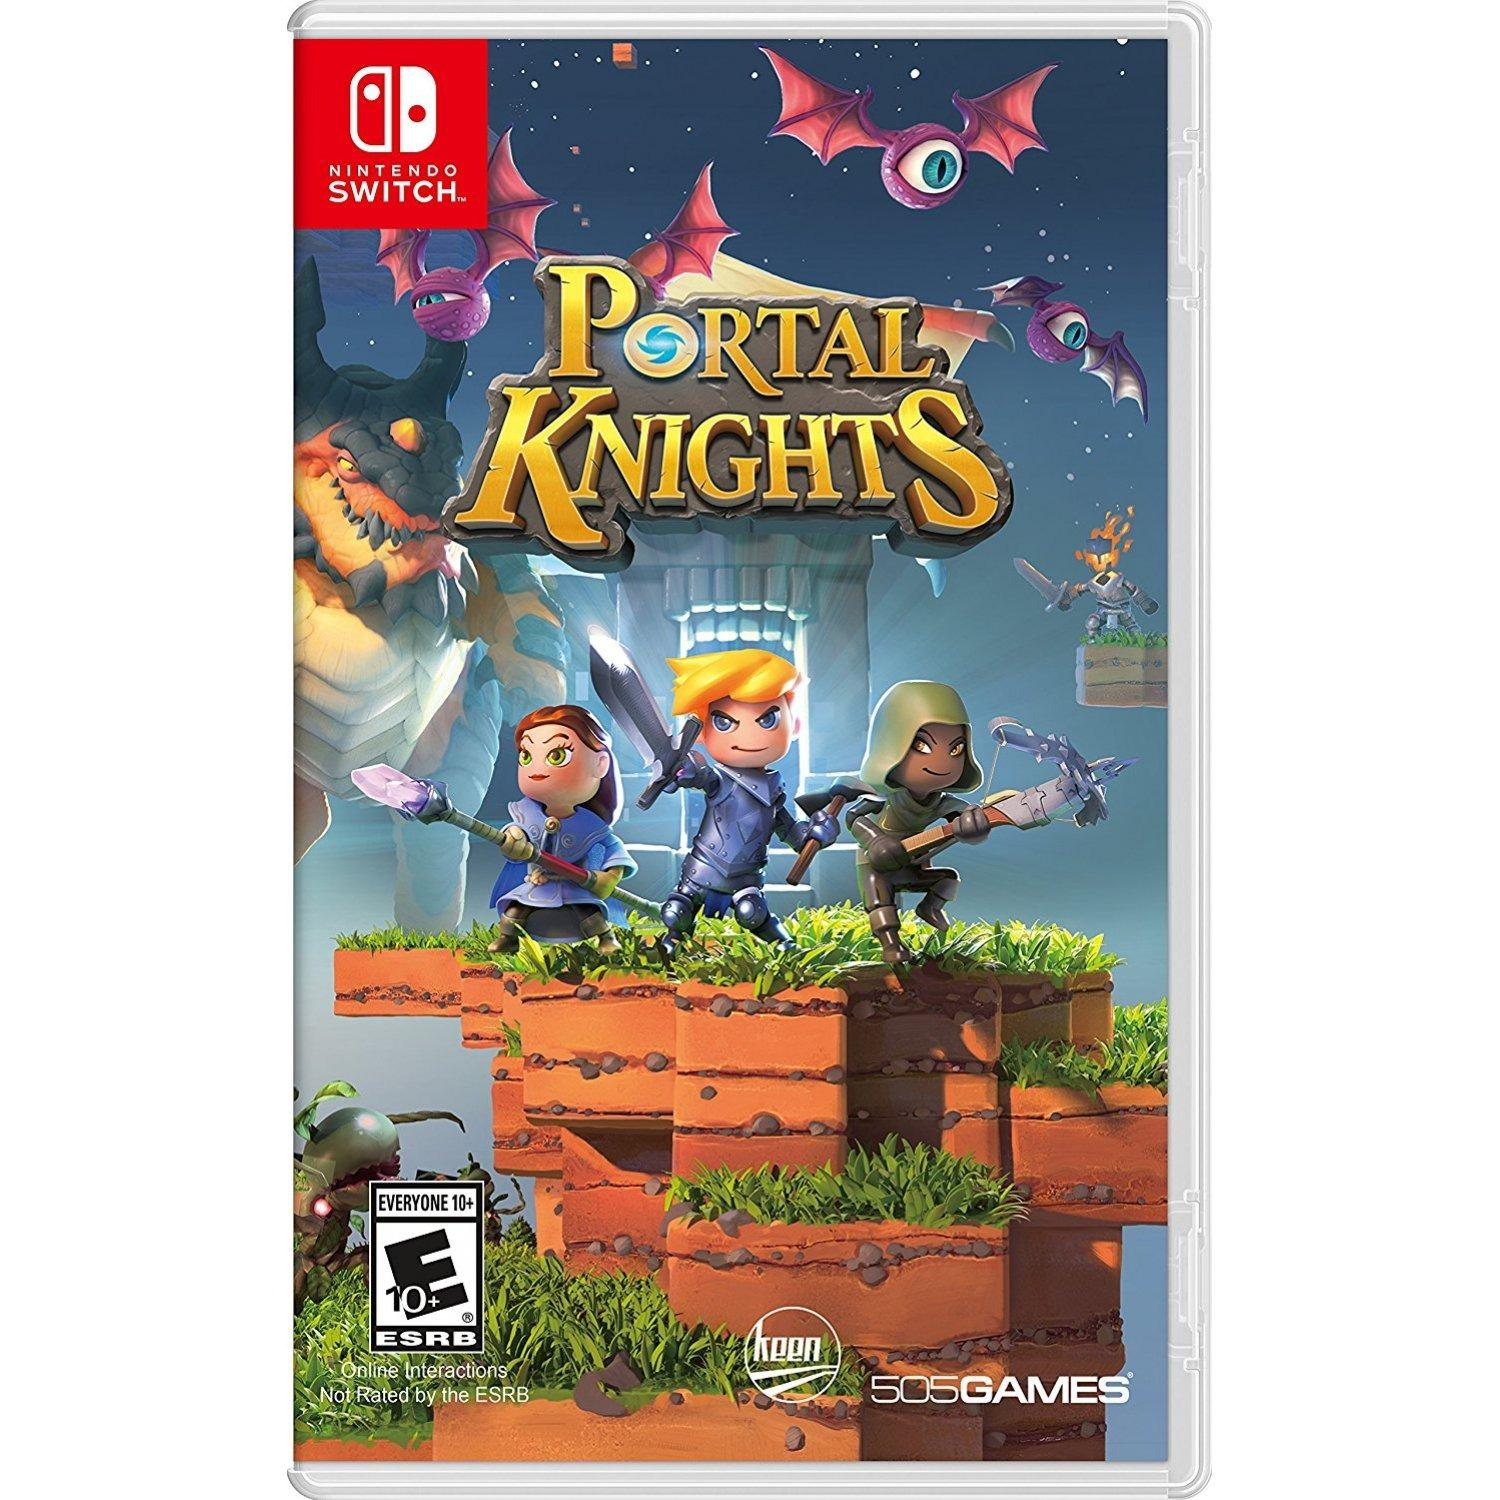 Sale Nintendo Switch Portal Knights 505 Games On Singapore